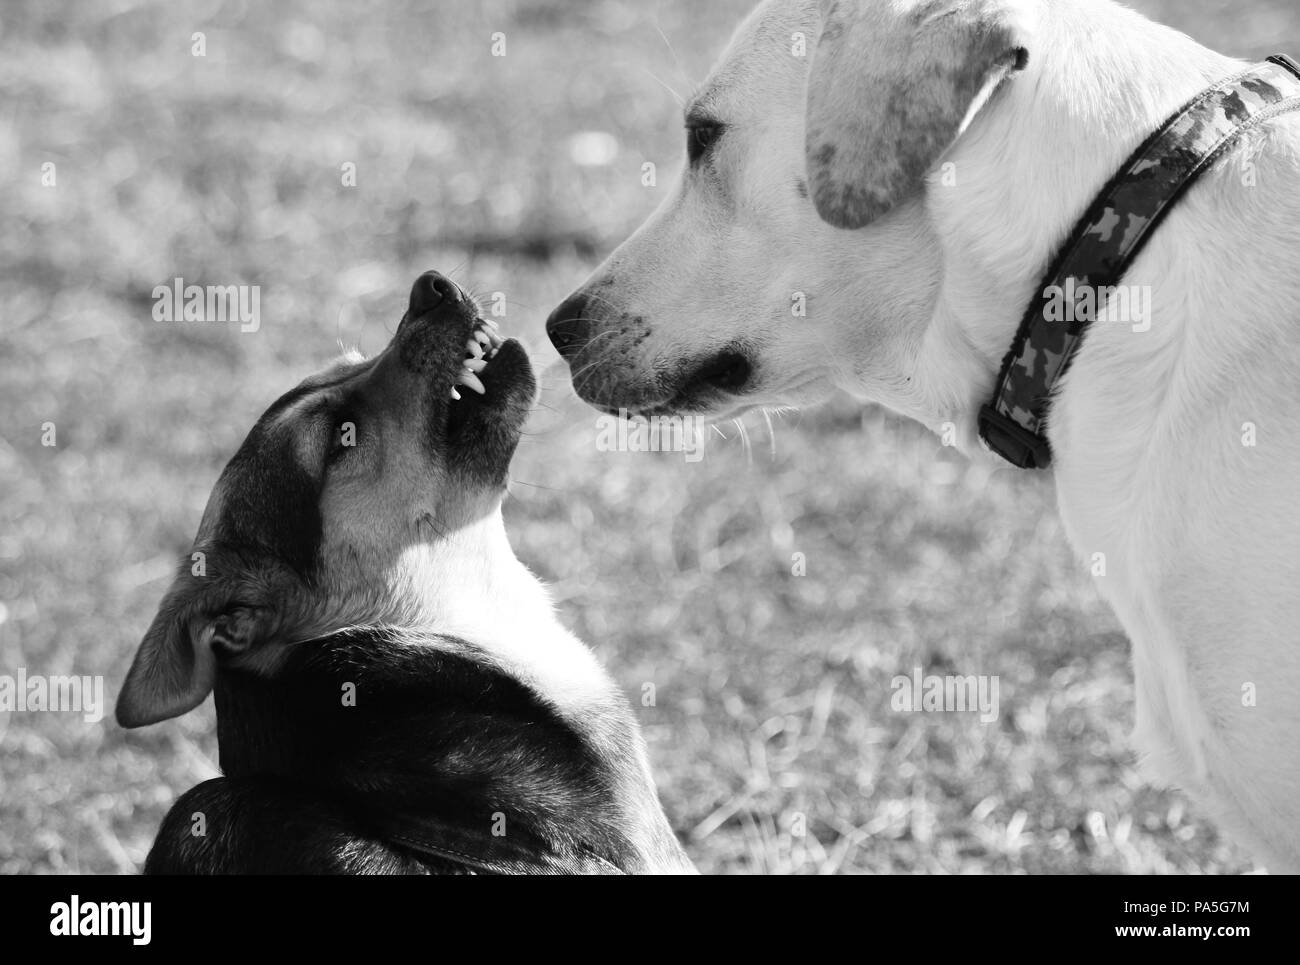 A small dog growls with anger and mistrust towards a labrador that seems quiet. - Stock Image